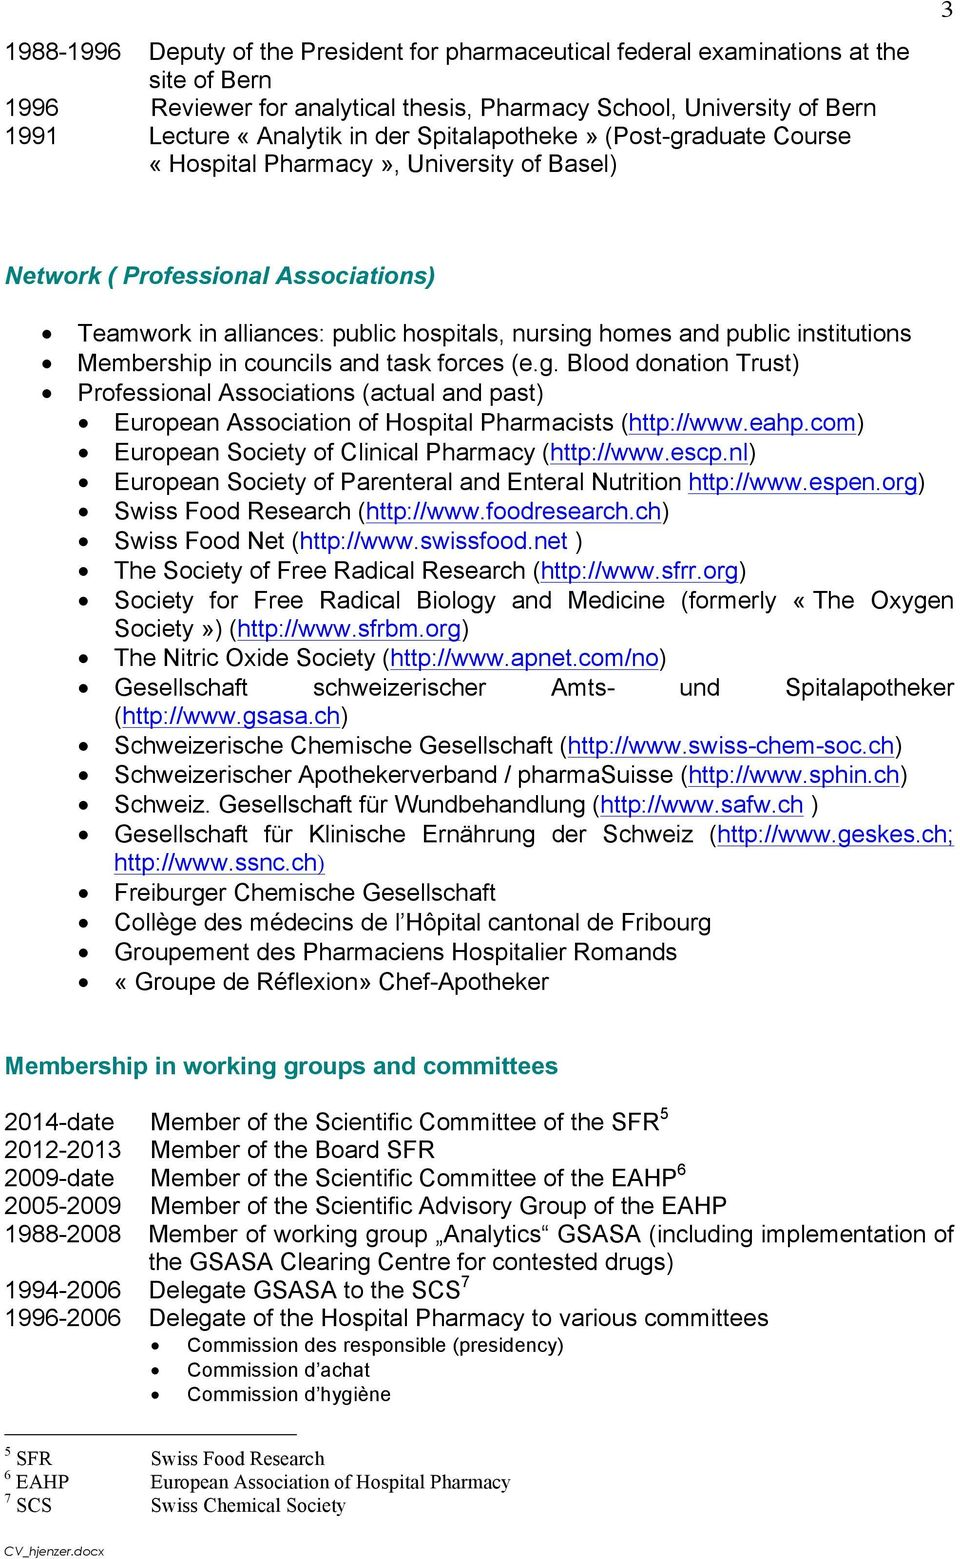 Membership in councils and task forces (e.g. Blood donation Trust) Professional Associations (actual and past) European Association of Hospital Pharmacists (http://www.eahp.